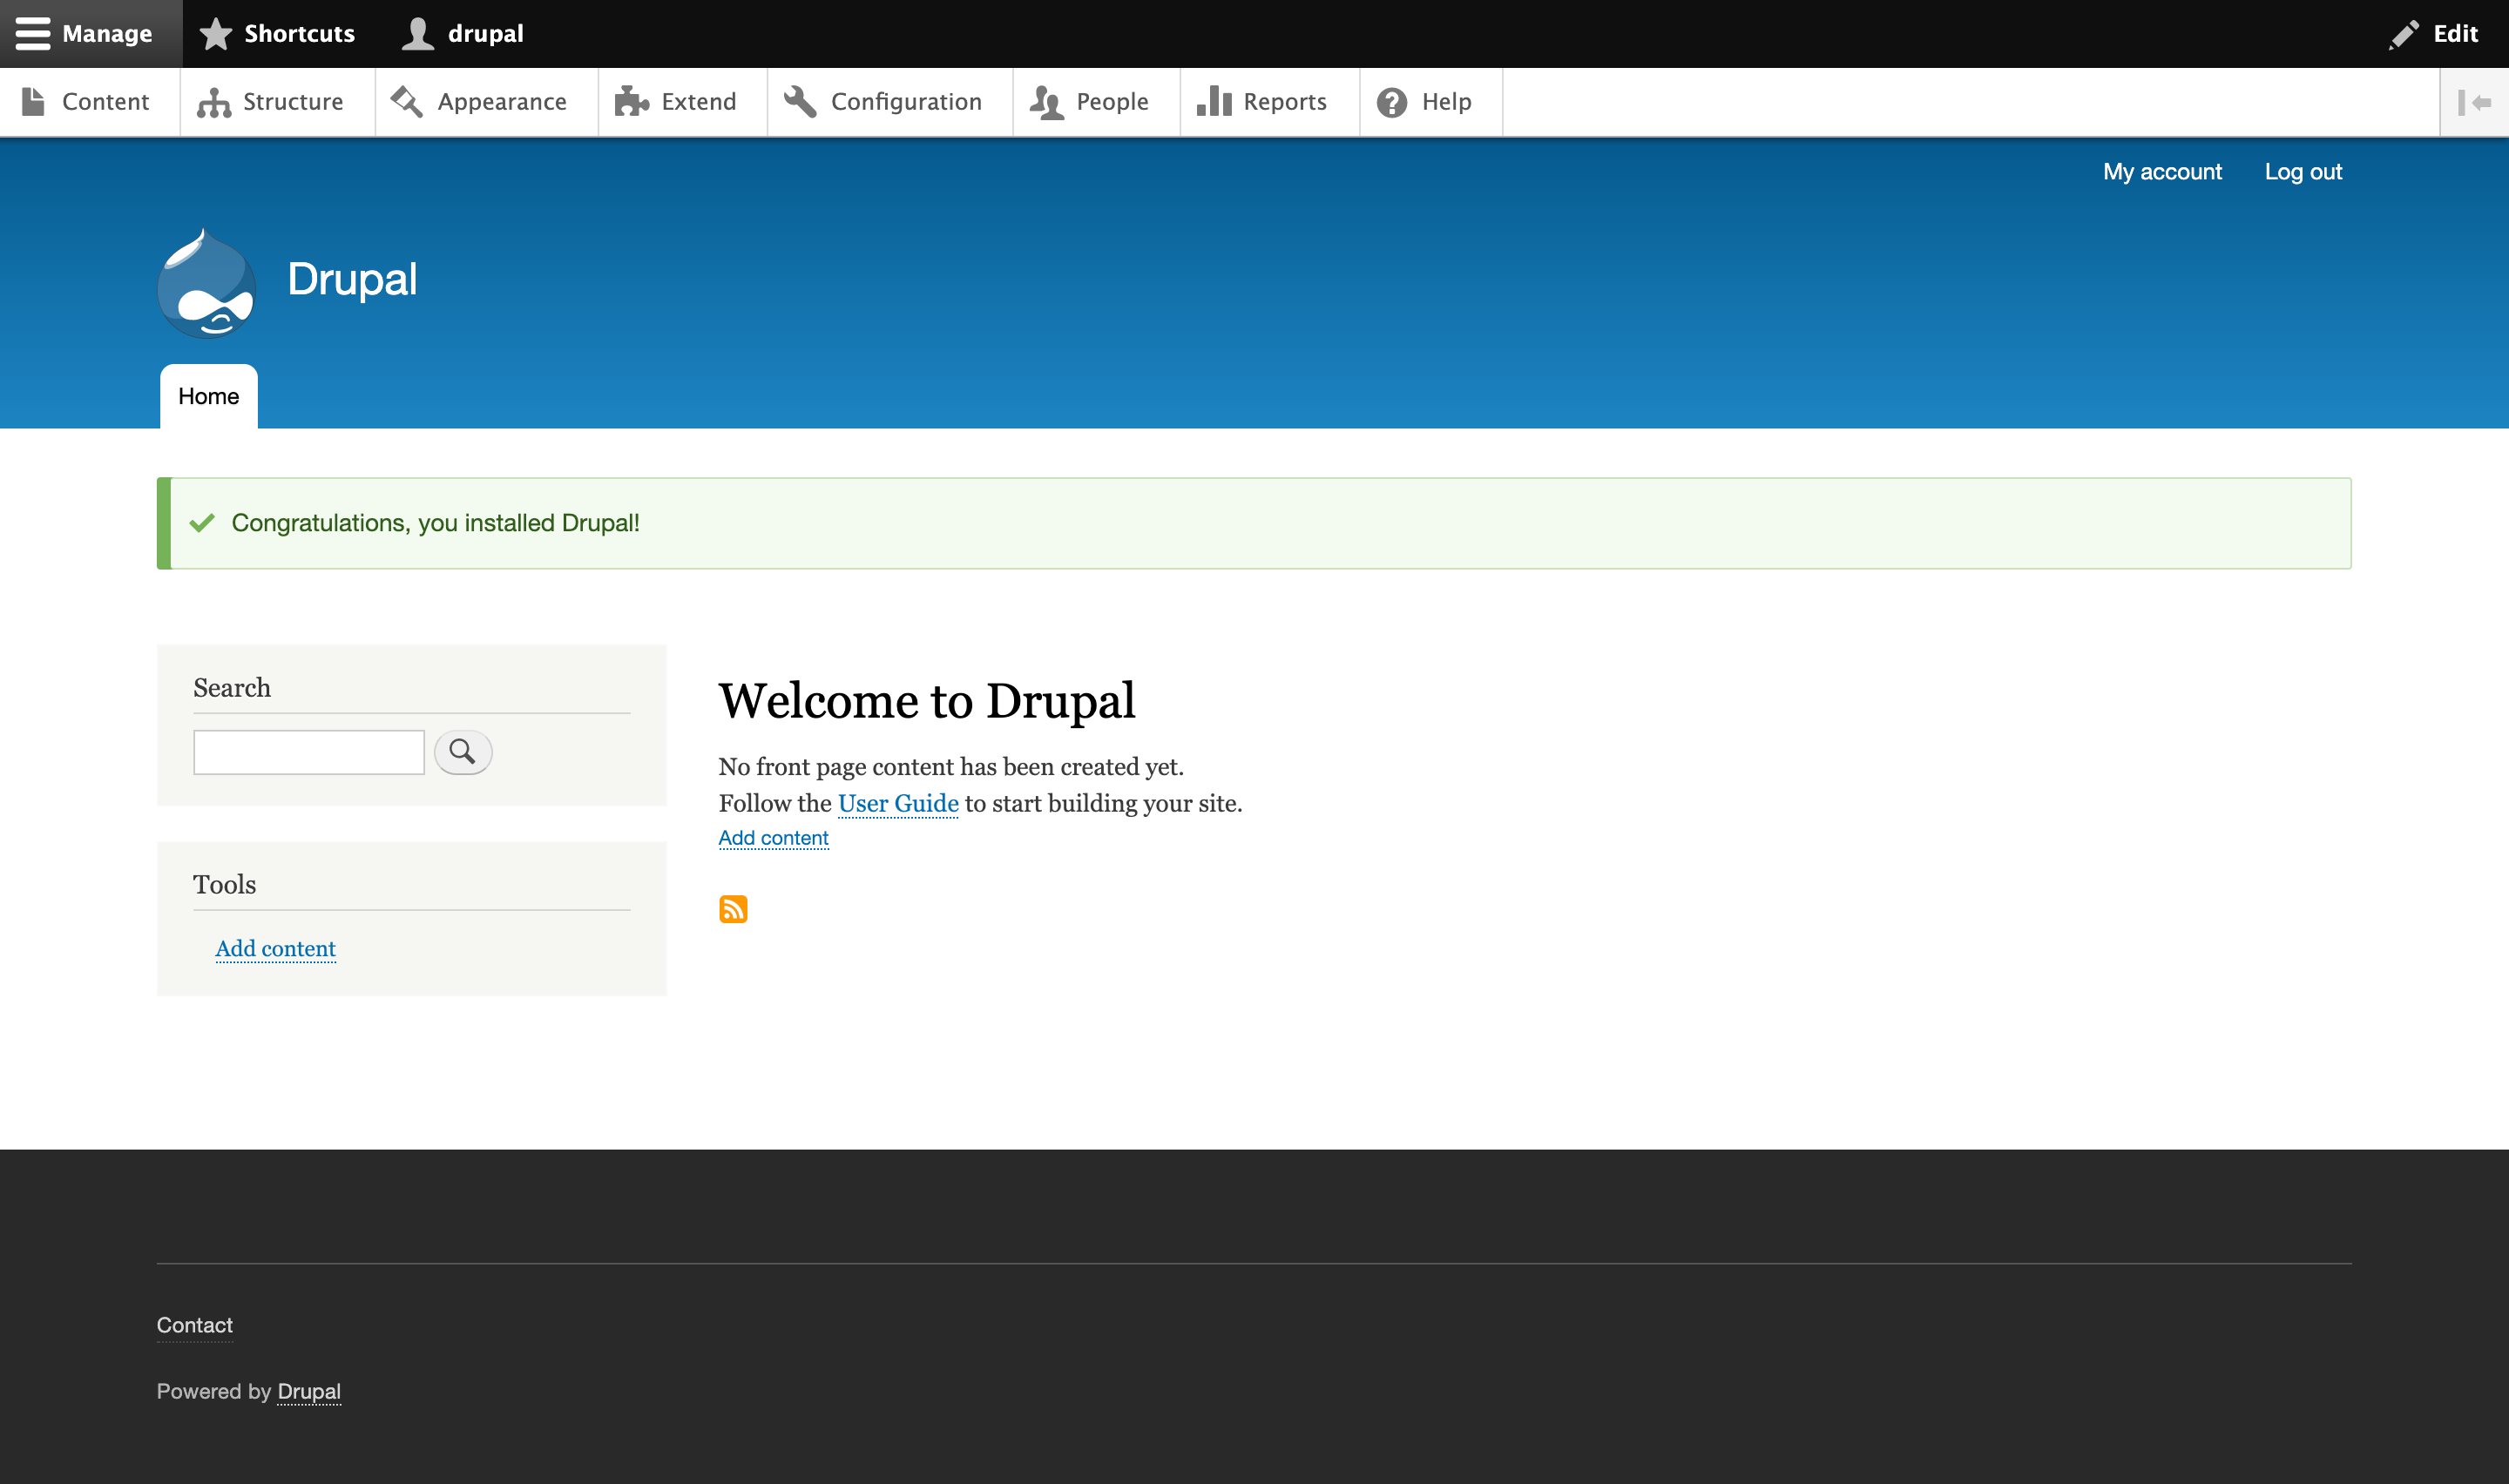 Welcome to Drupal page on Drupal web interface